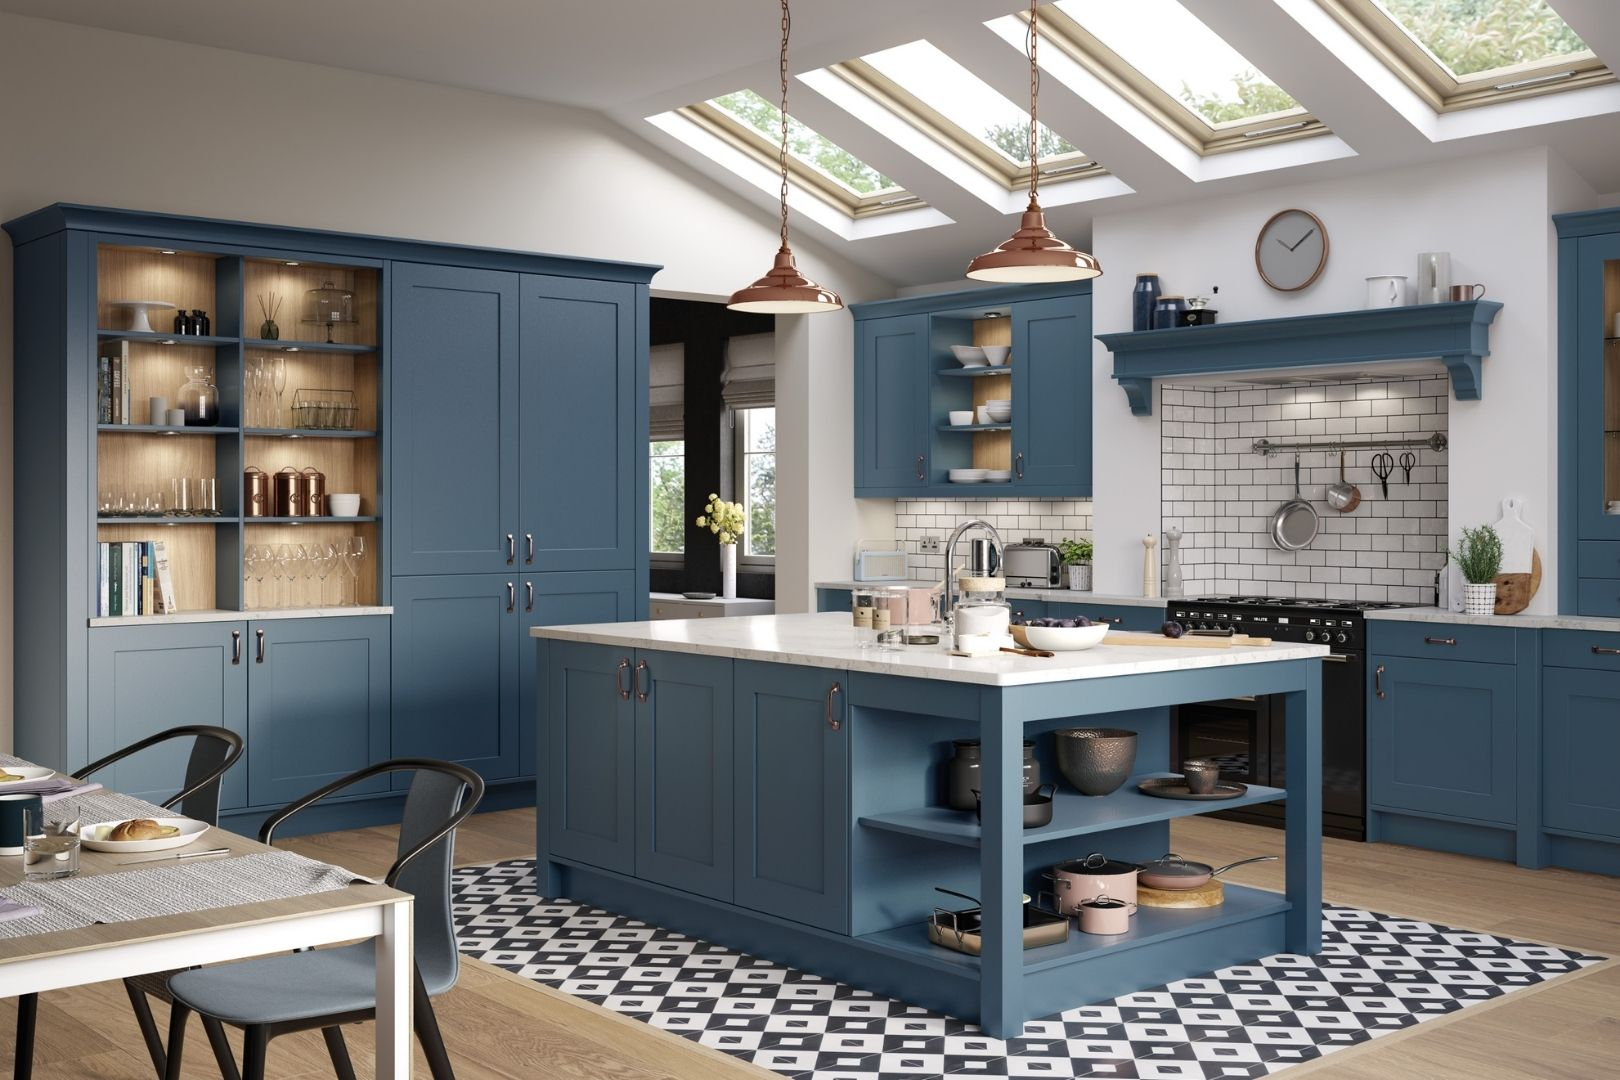 A Complete Guide To The Top Kitchen Trends of 2021